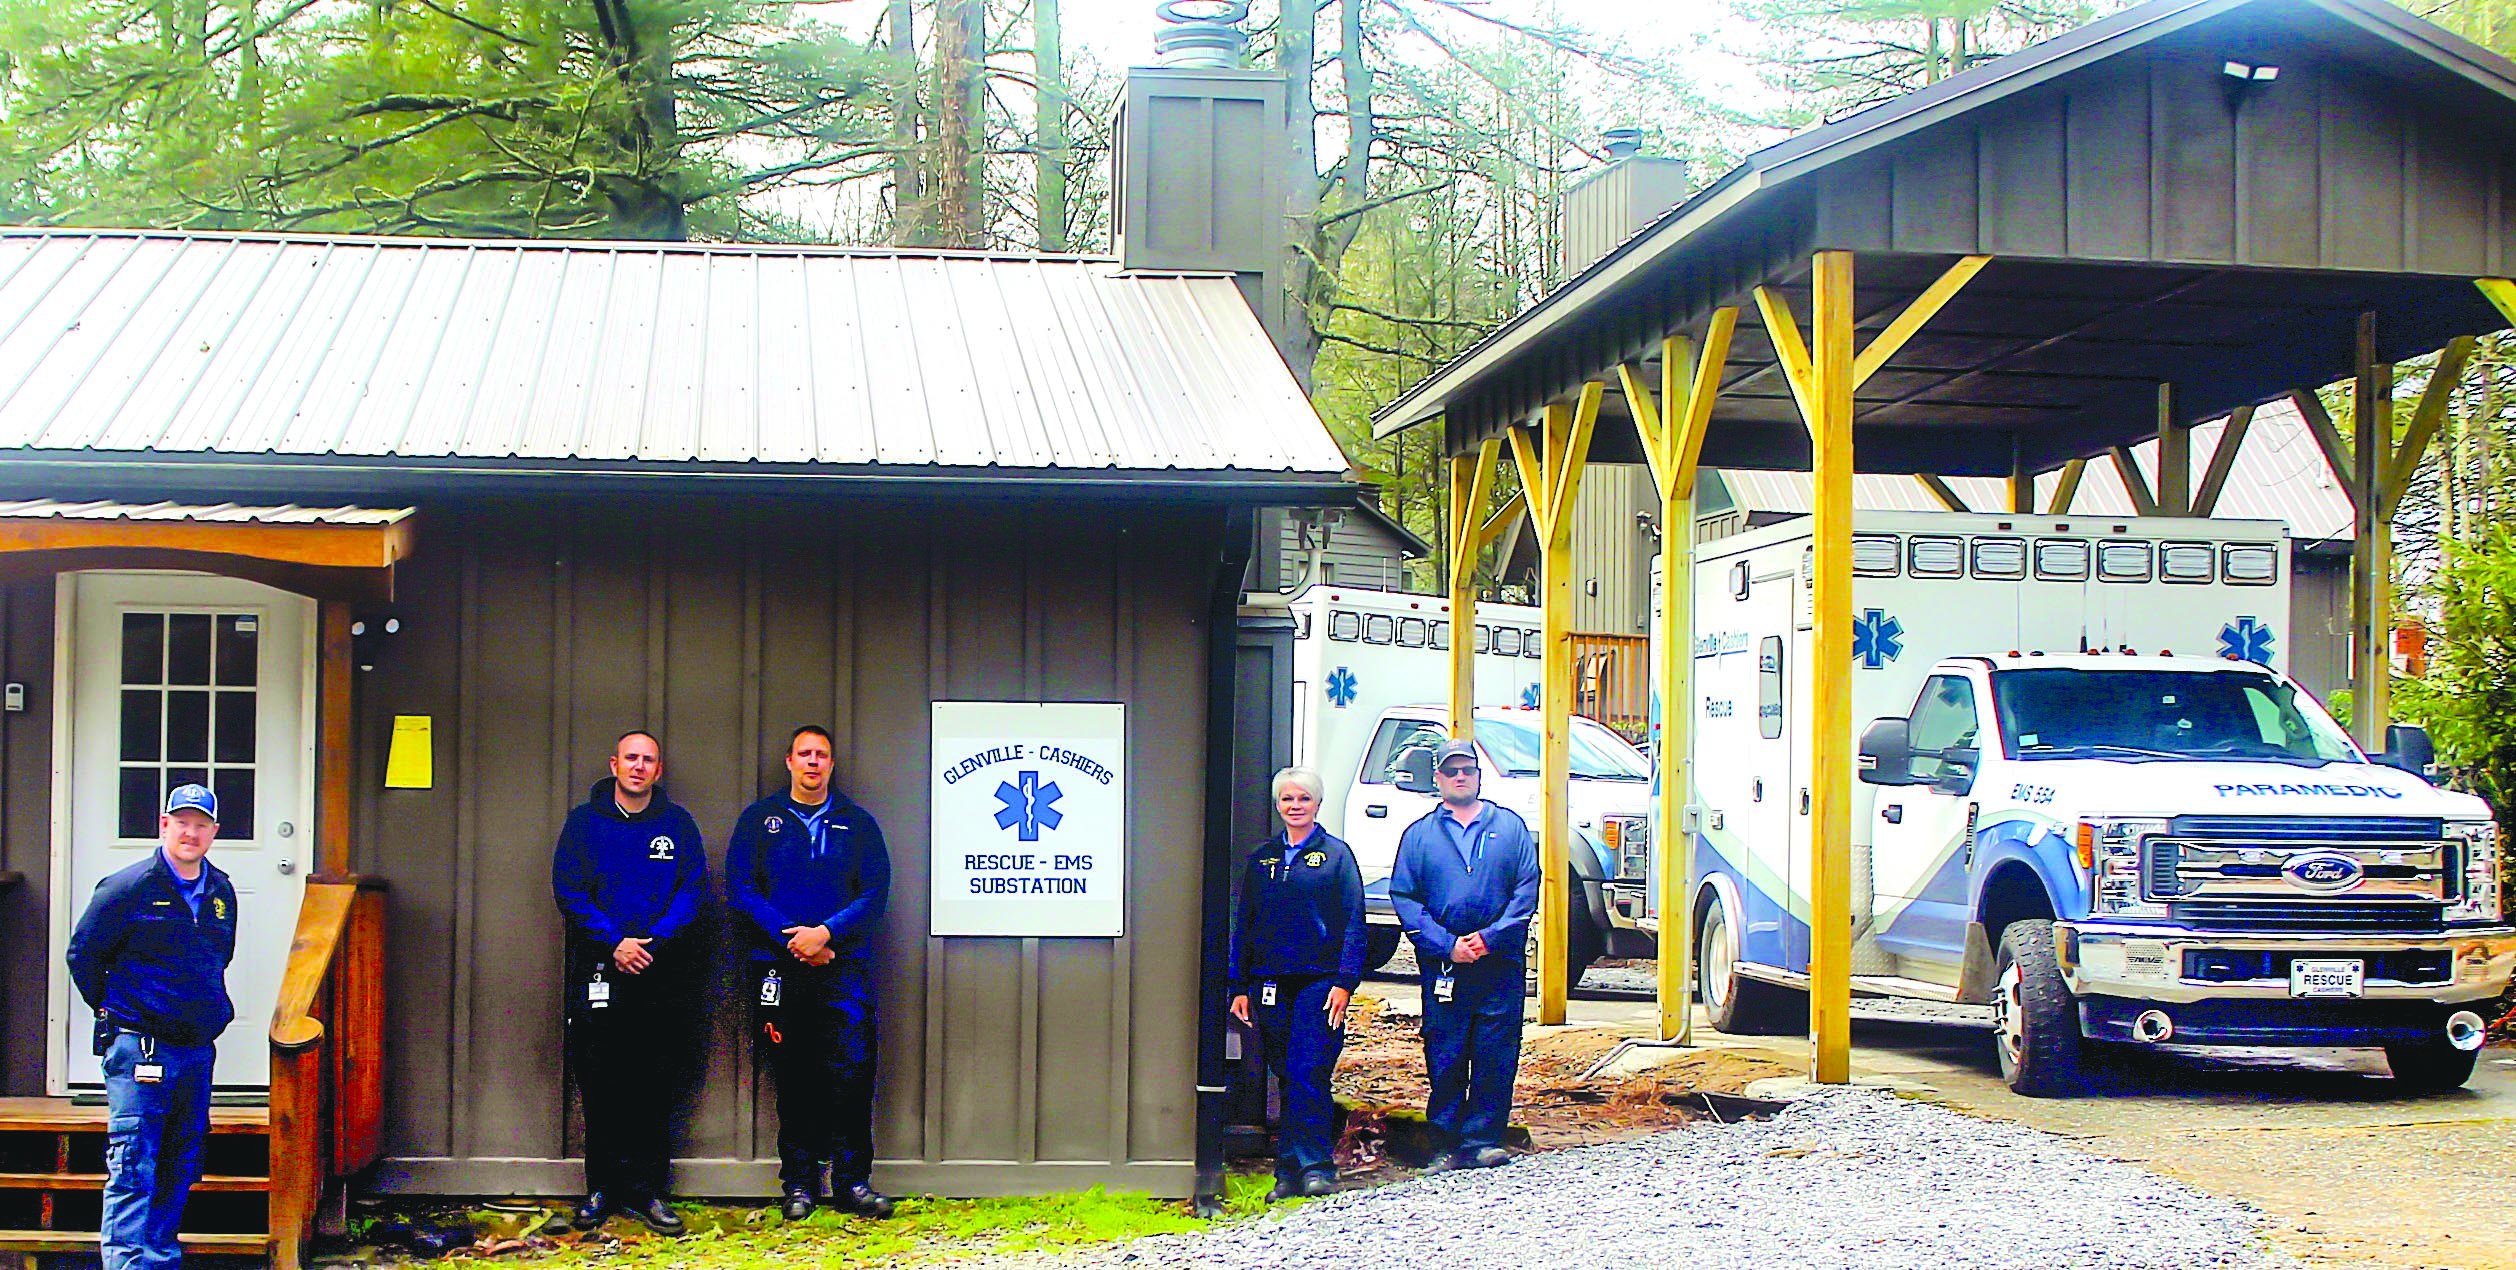 The Glenville-Cashiers Rescue Squad recently began staffing a second, temporary headquarters in Cashiers off US 64, across the street from the site of its new location.